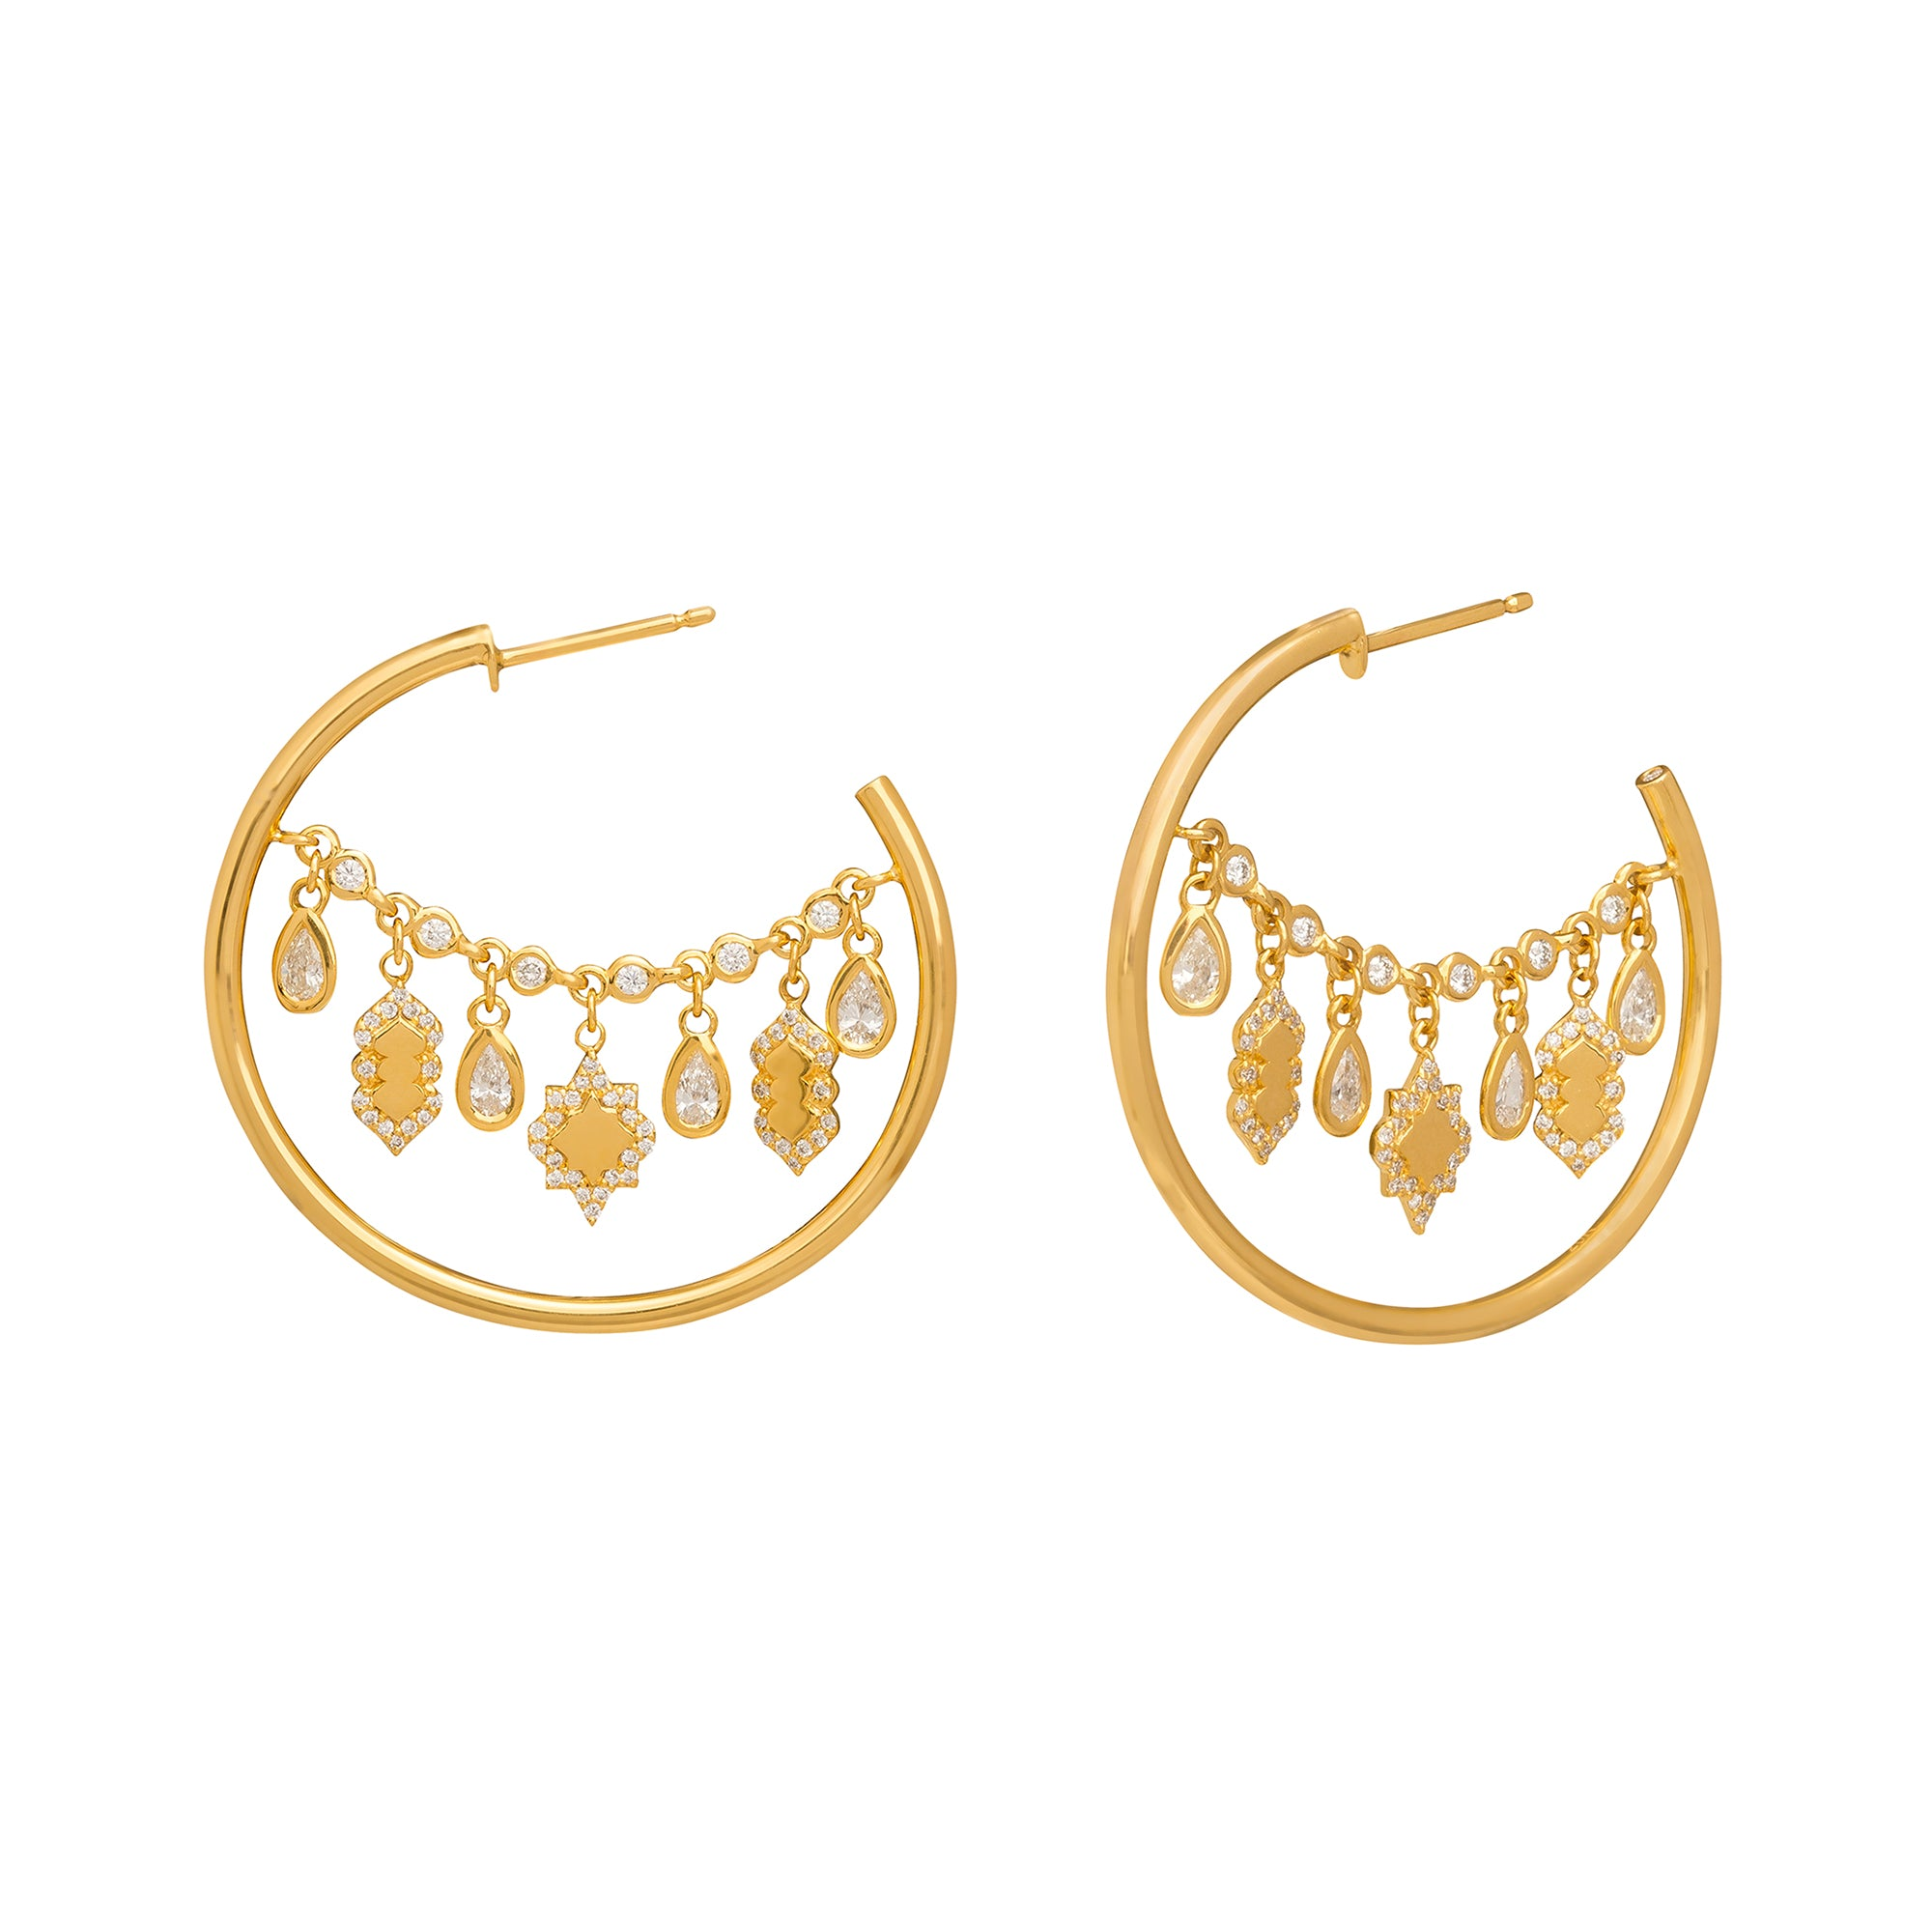 Small Lantern Hoop Earrings by Buddha Mama for Broken English Jewelry